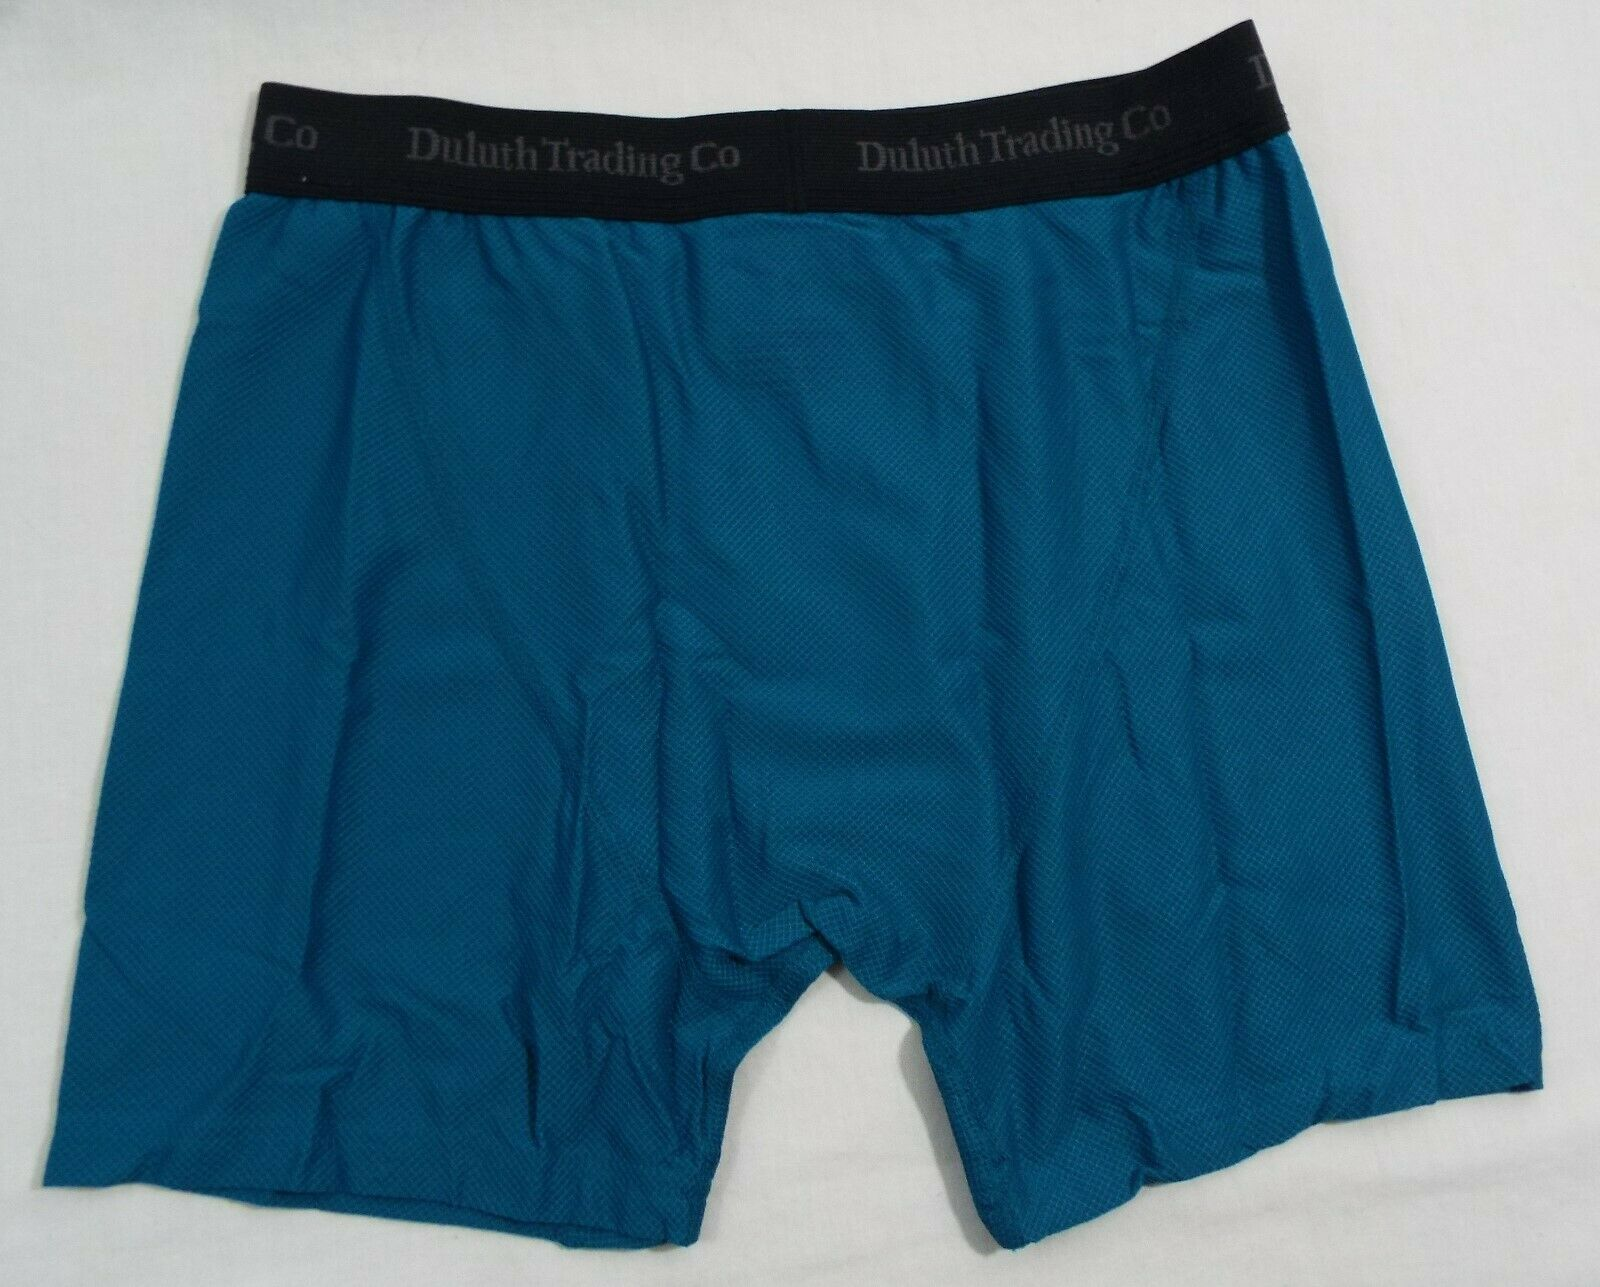 Duluth Trading Co 2 Pair Extra Long Buck Naked Boxer